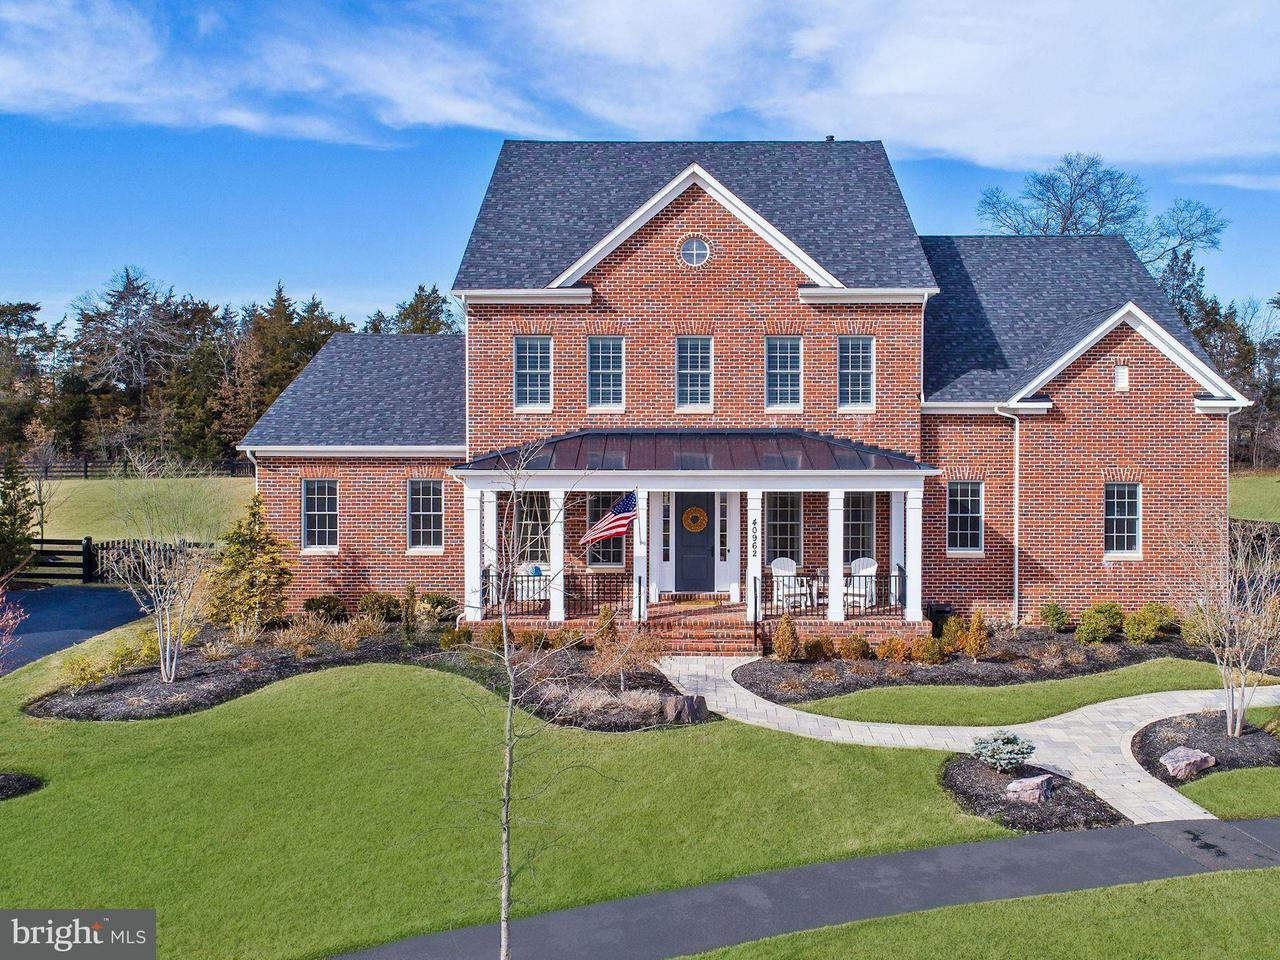 Single Family Home for Sale at 40962 Sweet Thorn Lane 40962 Sweet Thorn Lane Aldie, Virginia 20105 United States